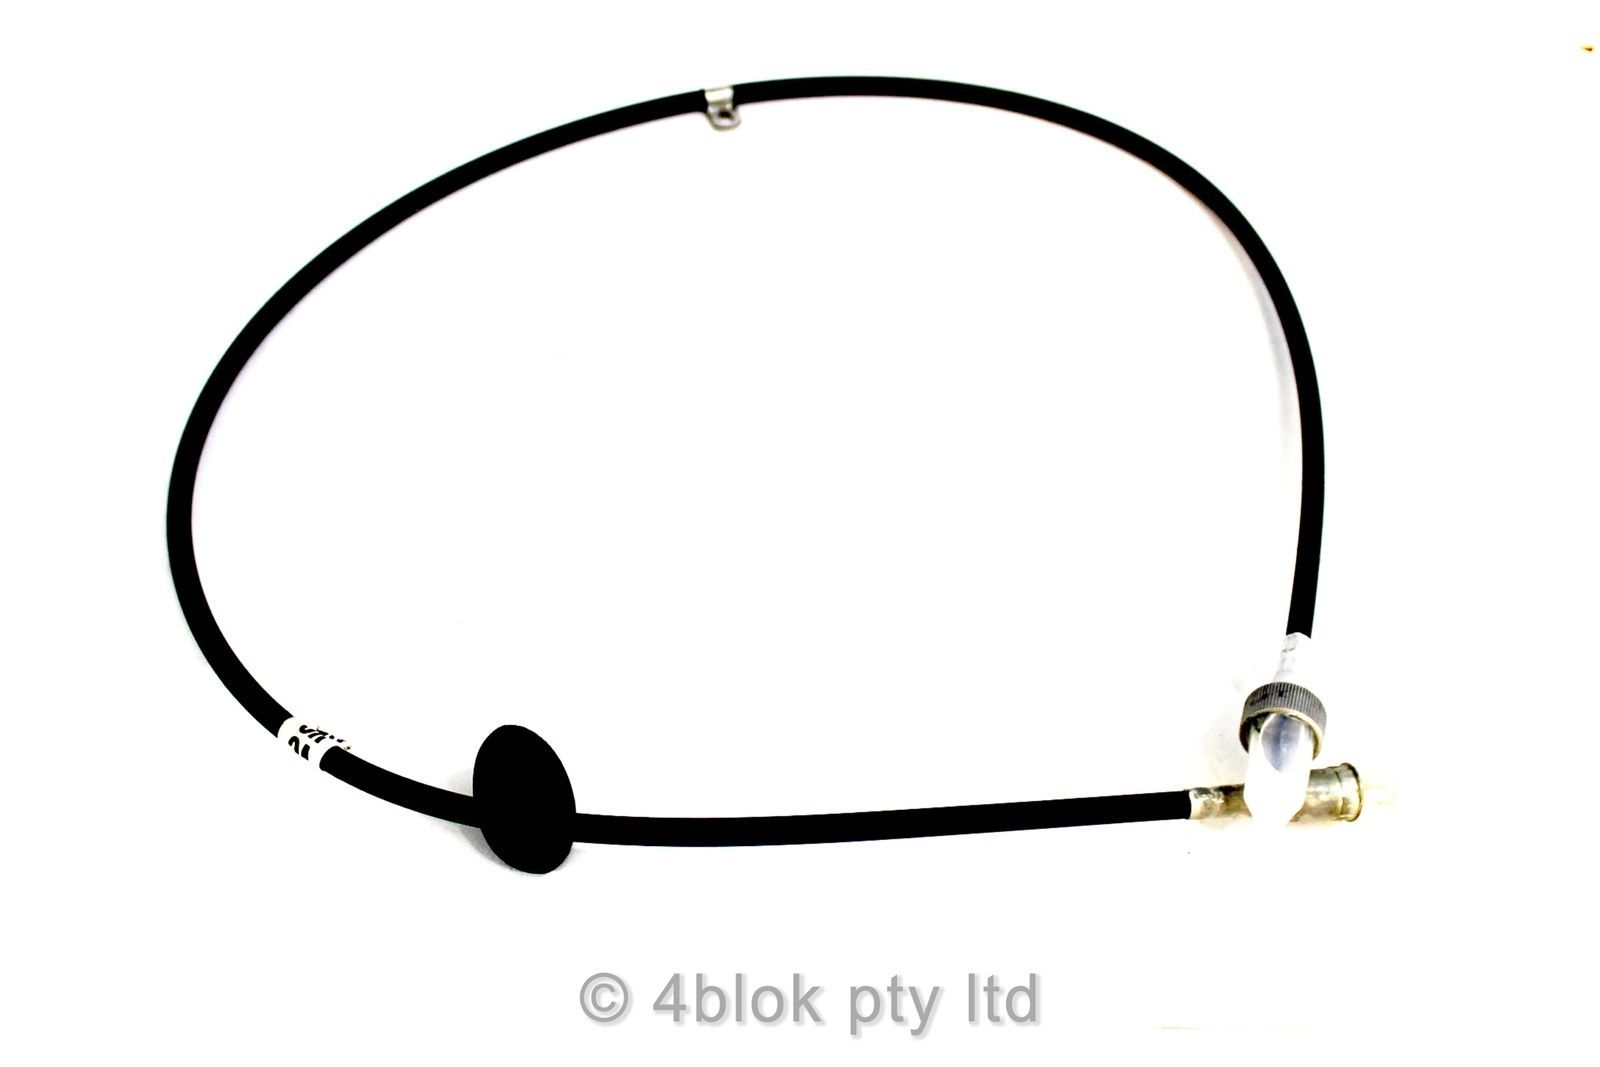 Holden Commodore Vb Vc Vh Turbo 350 400 Speedo Cable New